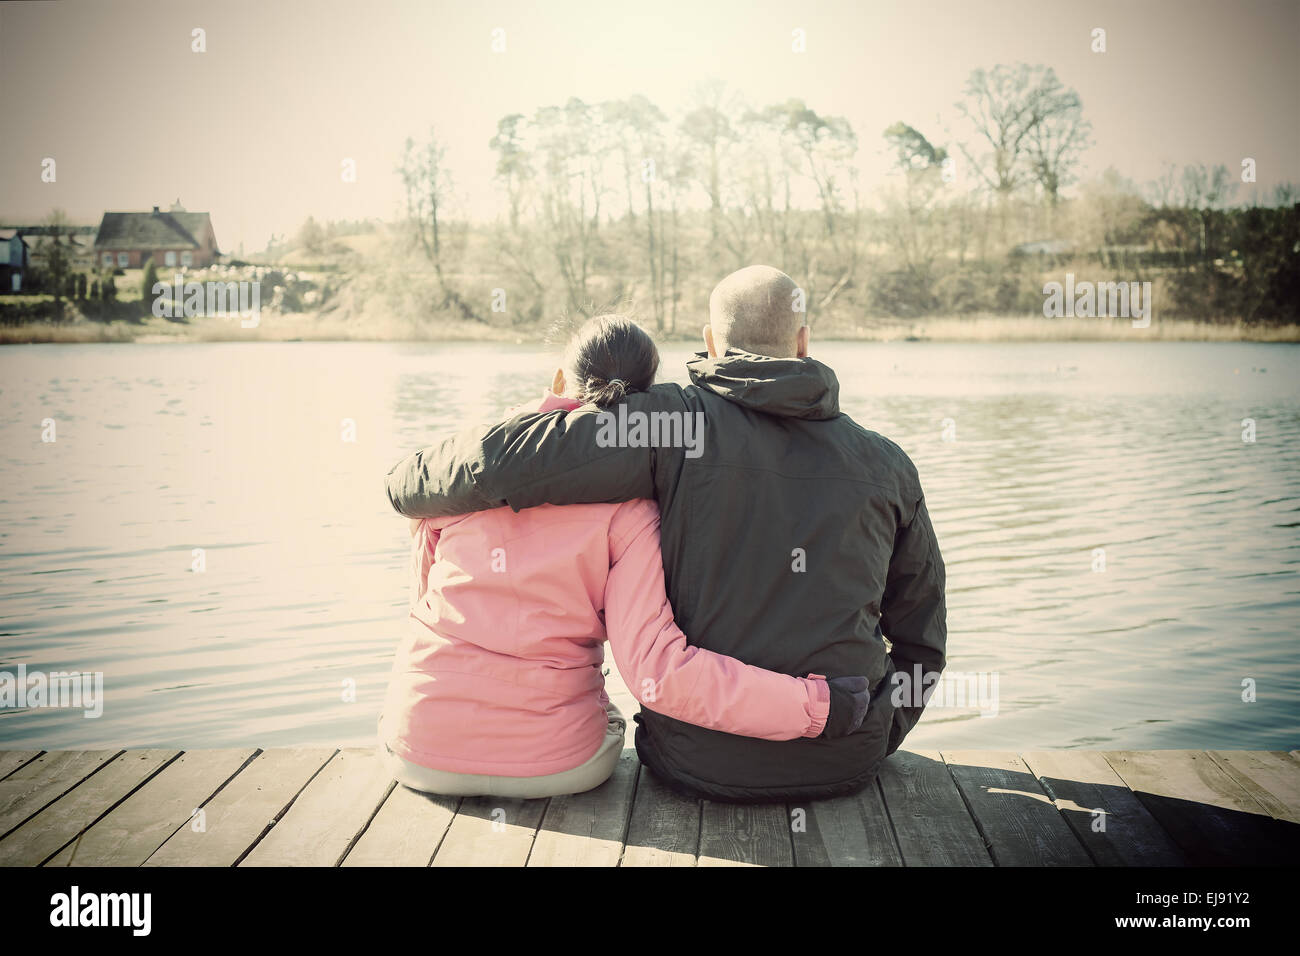 Retro sepia stylized picture of a couple sitting on wooden pier by lake. - Stock Image